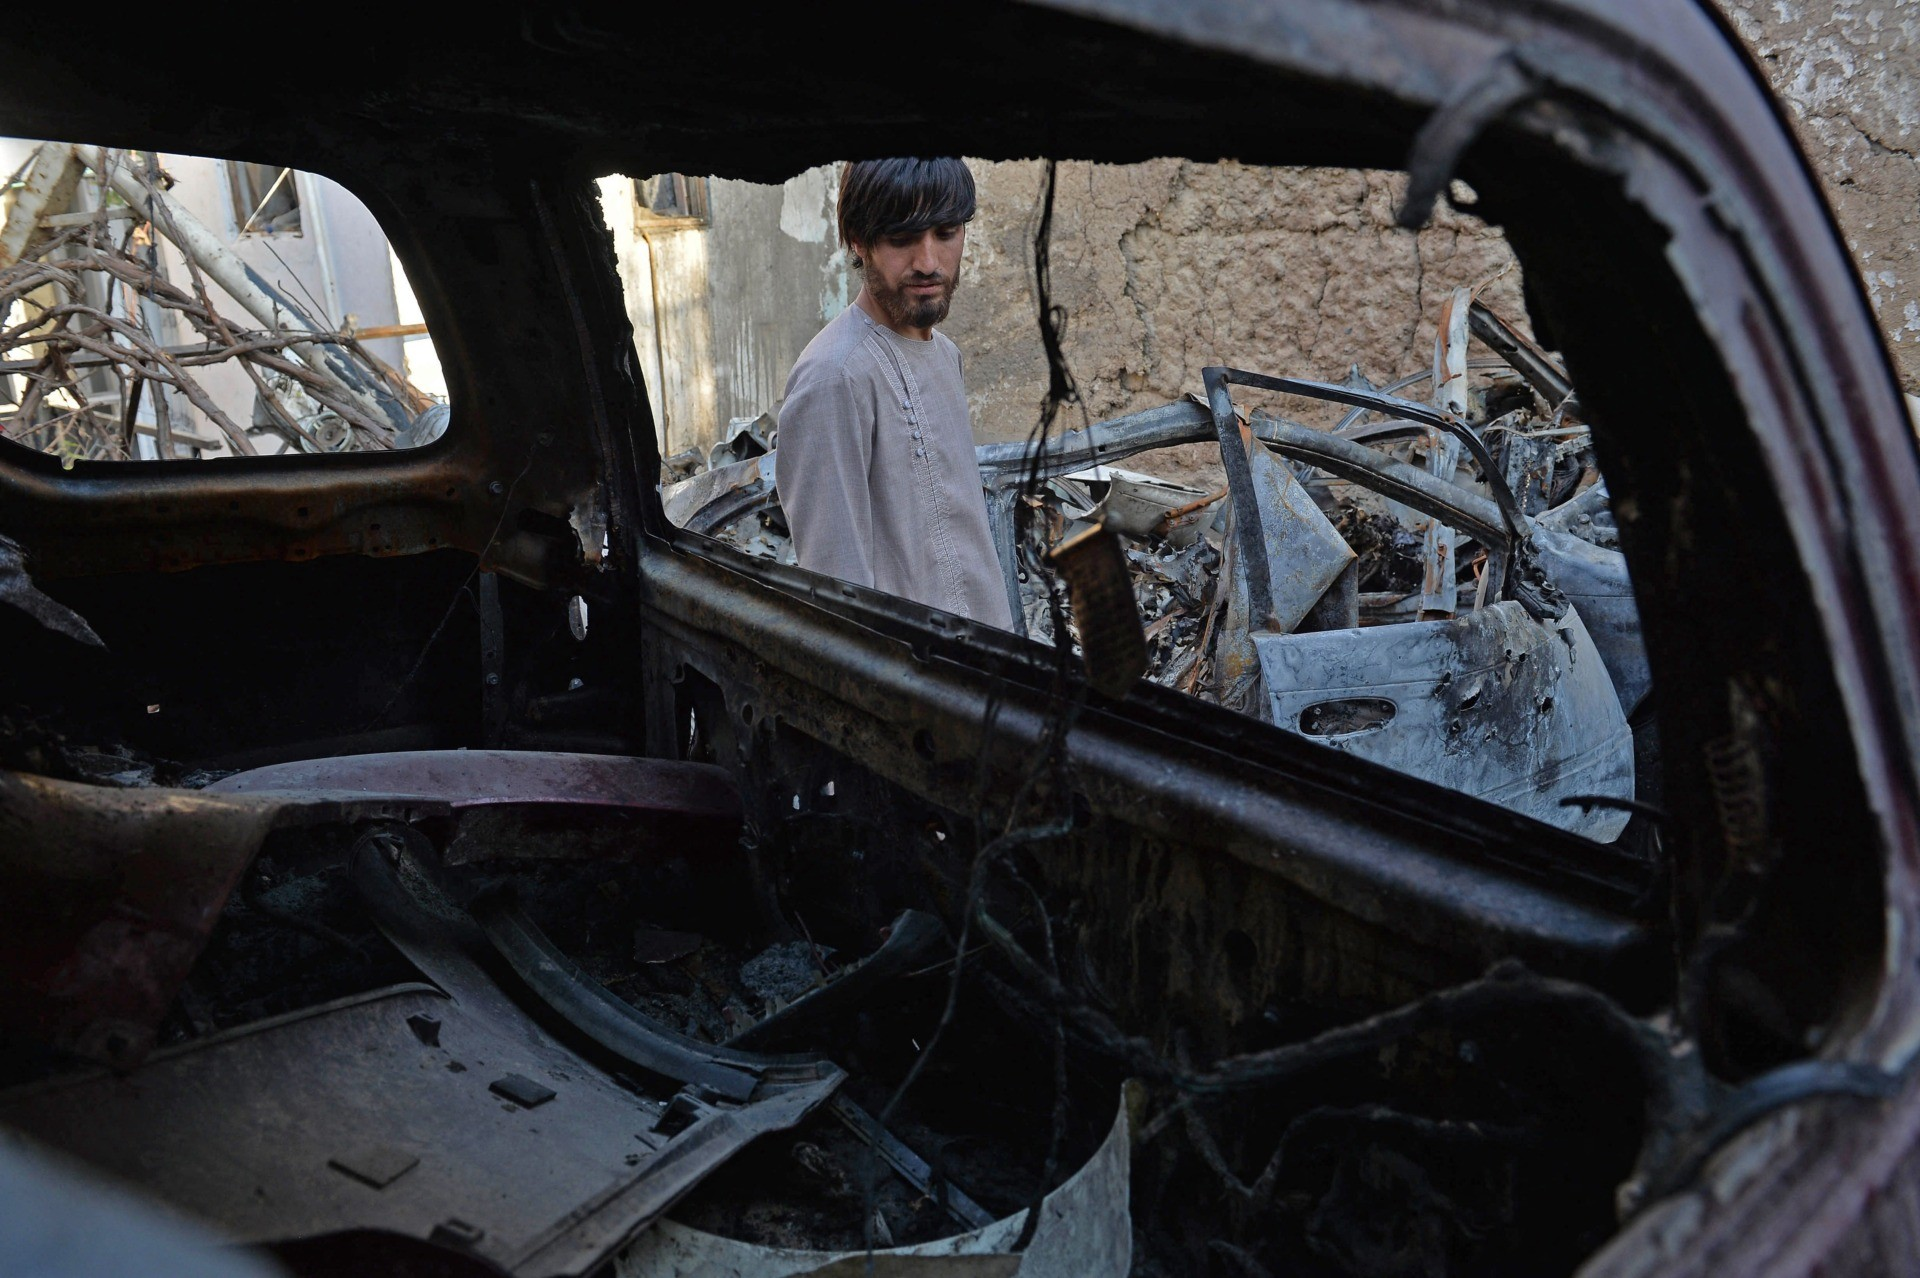 A relative of Ezmarai Ahmadi, is pictured through the wreckage of a vehicle that was damaged in a US drone strike in the Kwaja Burga neighbourhood of Kabul on September 18, 2021. - Ezmarai Ahmadi was wrongly identified as an Islamic State militant by US intelligence, who tracked his white Toyota for eight hours on August 29 before targeting the car, killing seven children and three adults. (Photo by Hoshang Hashimi / AFP) (Photo by HOSHANG HASHIMI/AFP via Getty Images)